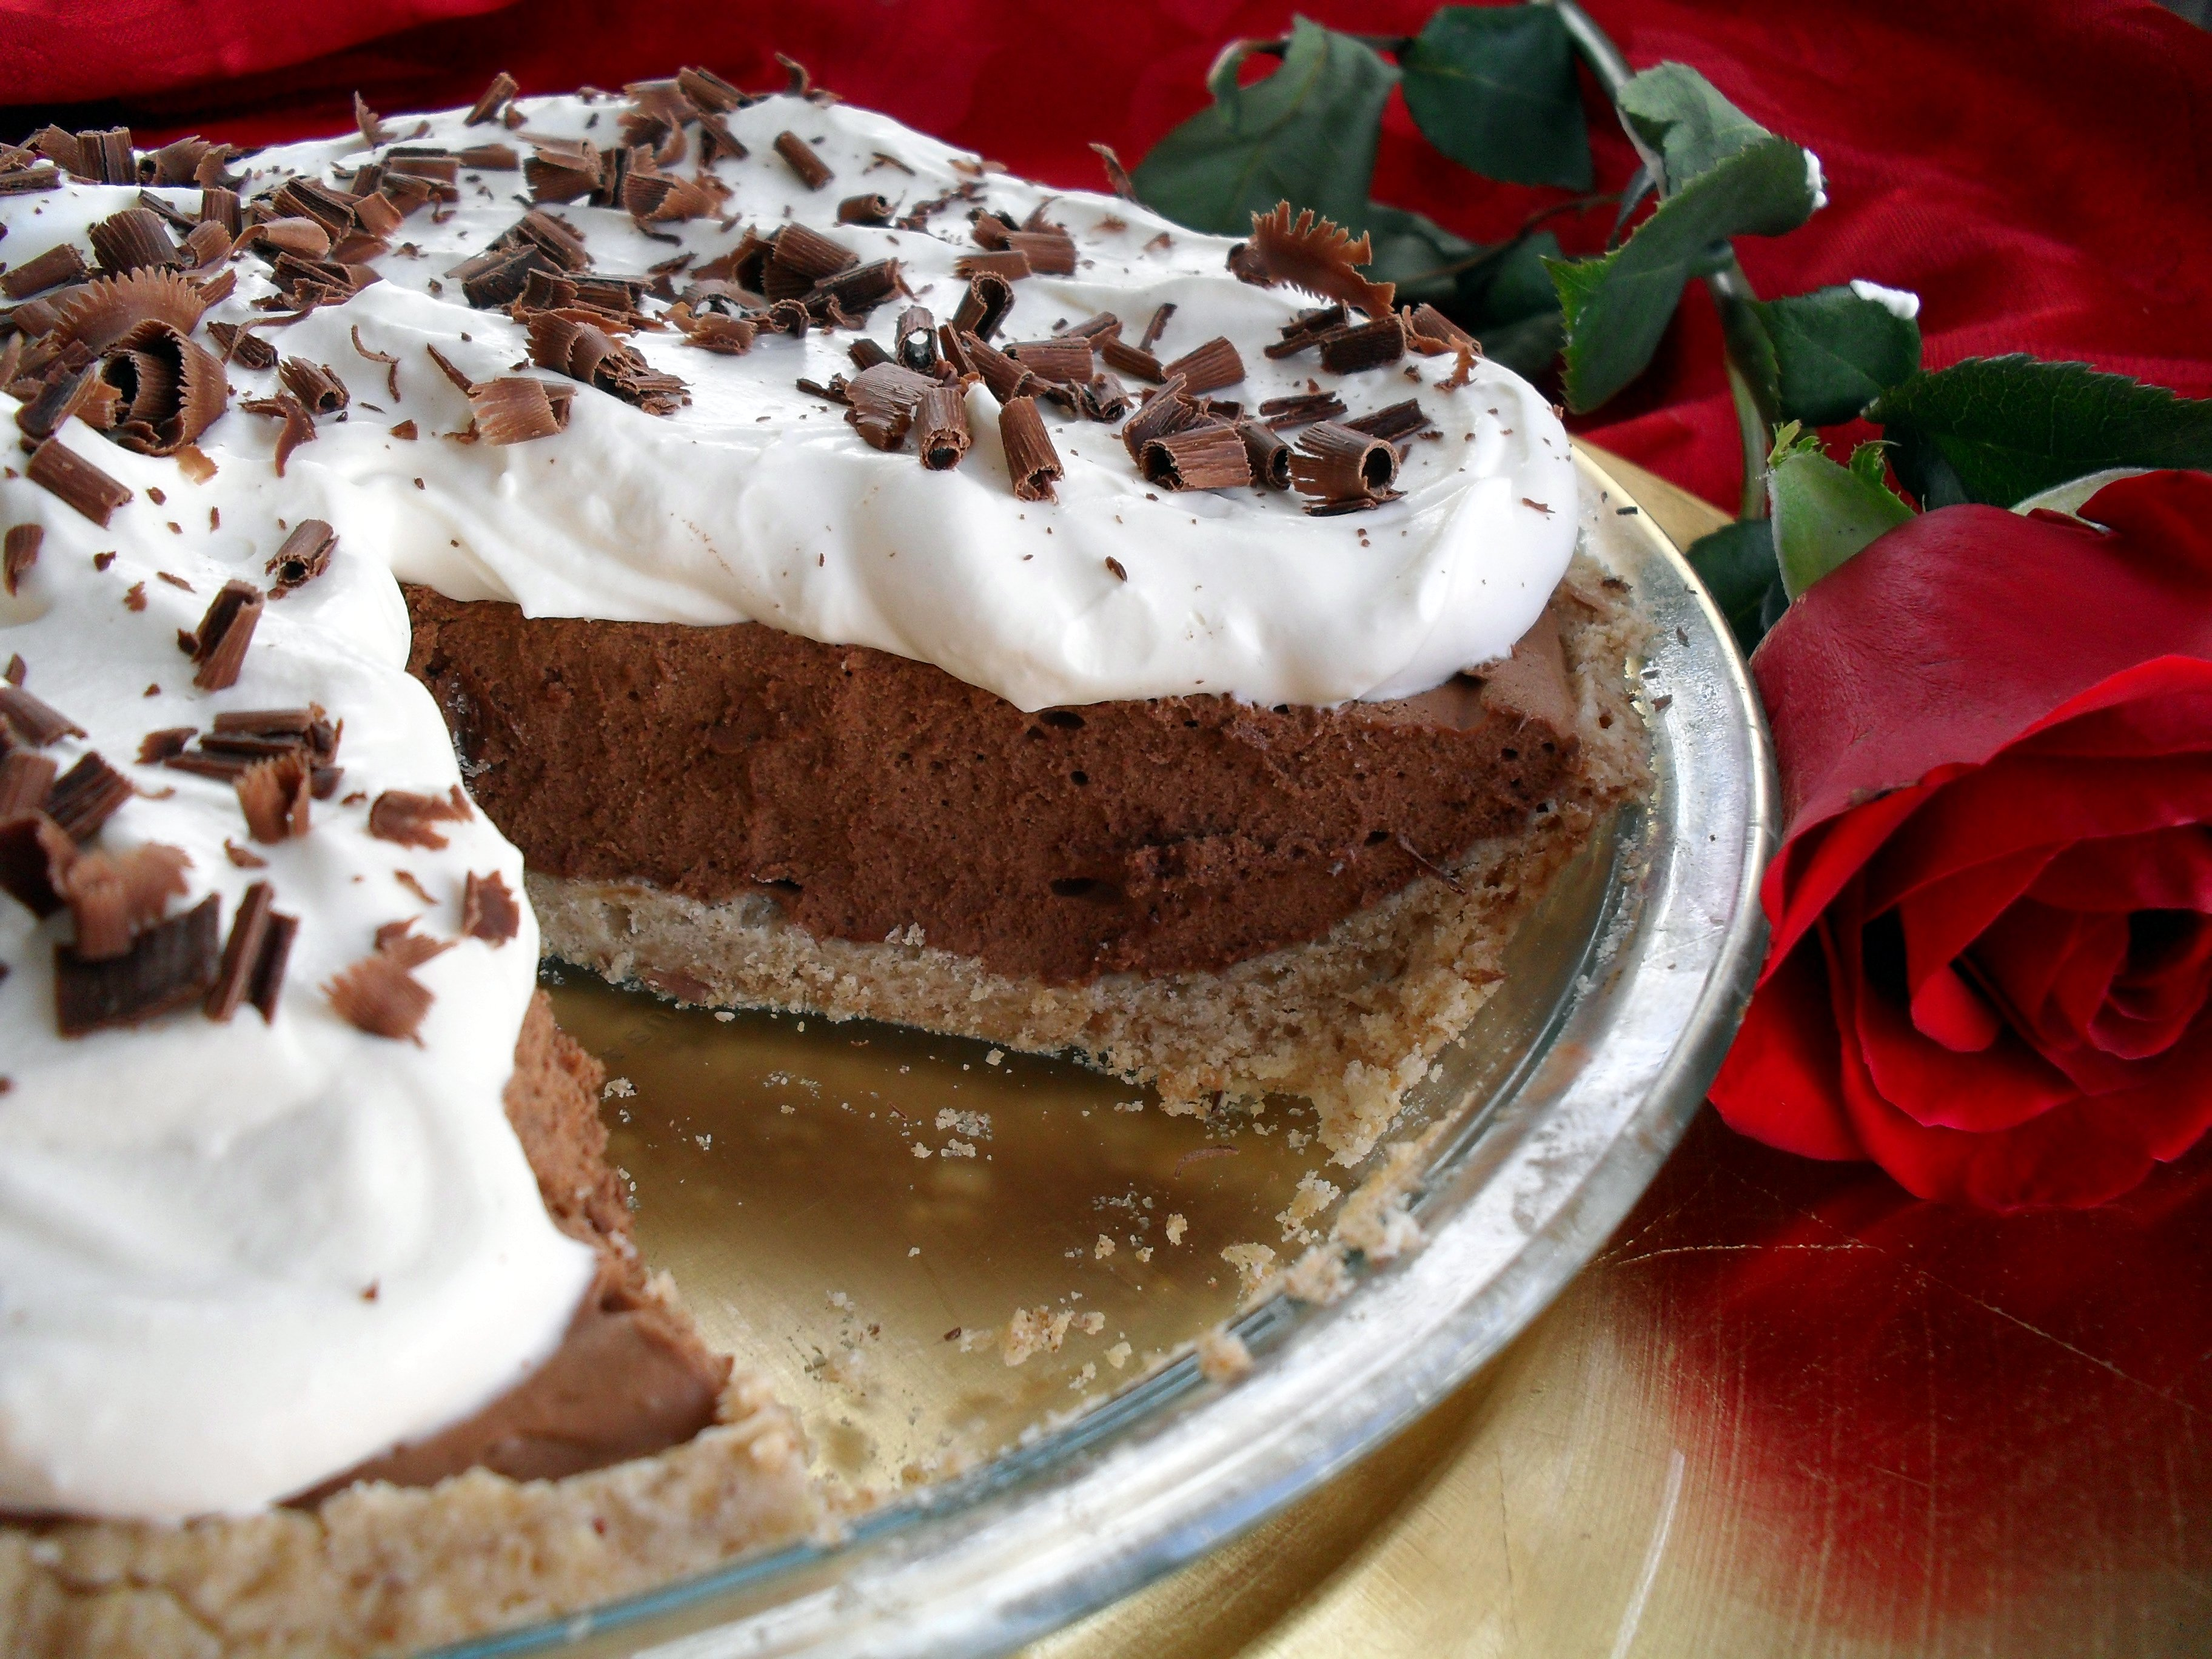 French Silk Pie with Stabilized Whipped Cream | Veronica's Cornucopia